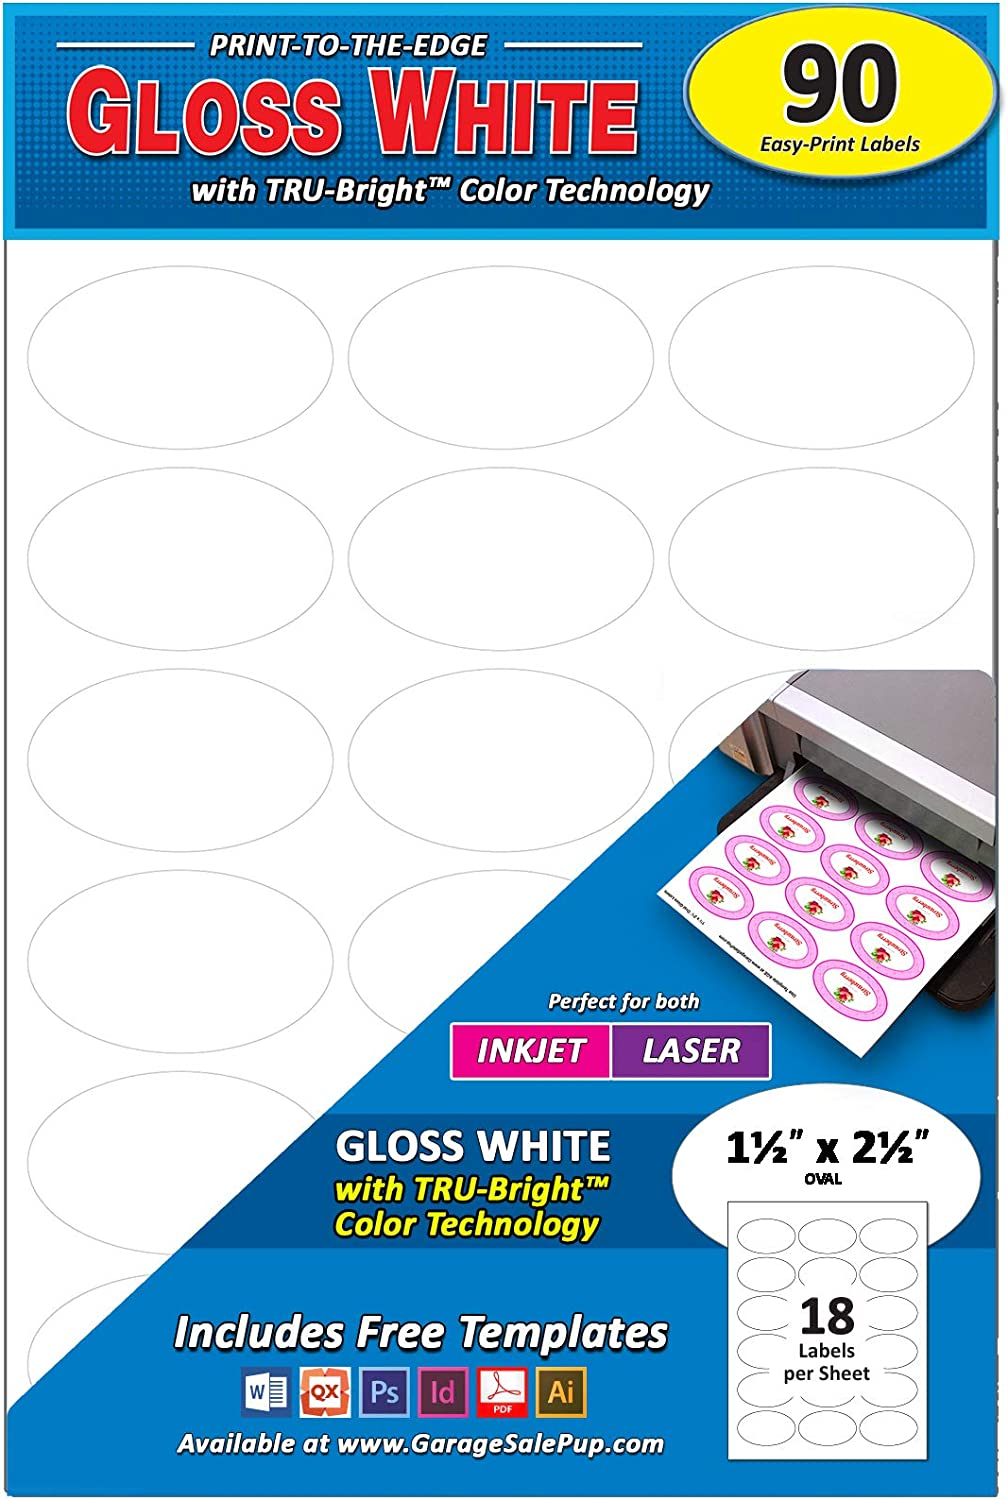 Pack of 540 Permanent Print-to-The-Edge Oval Labels 1.5 x 2.5-Inches Laser//Inkjet Glossy White.